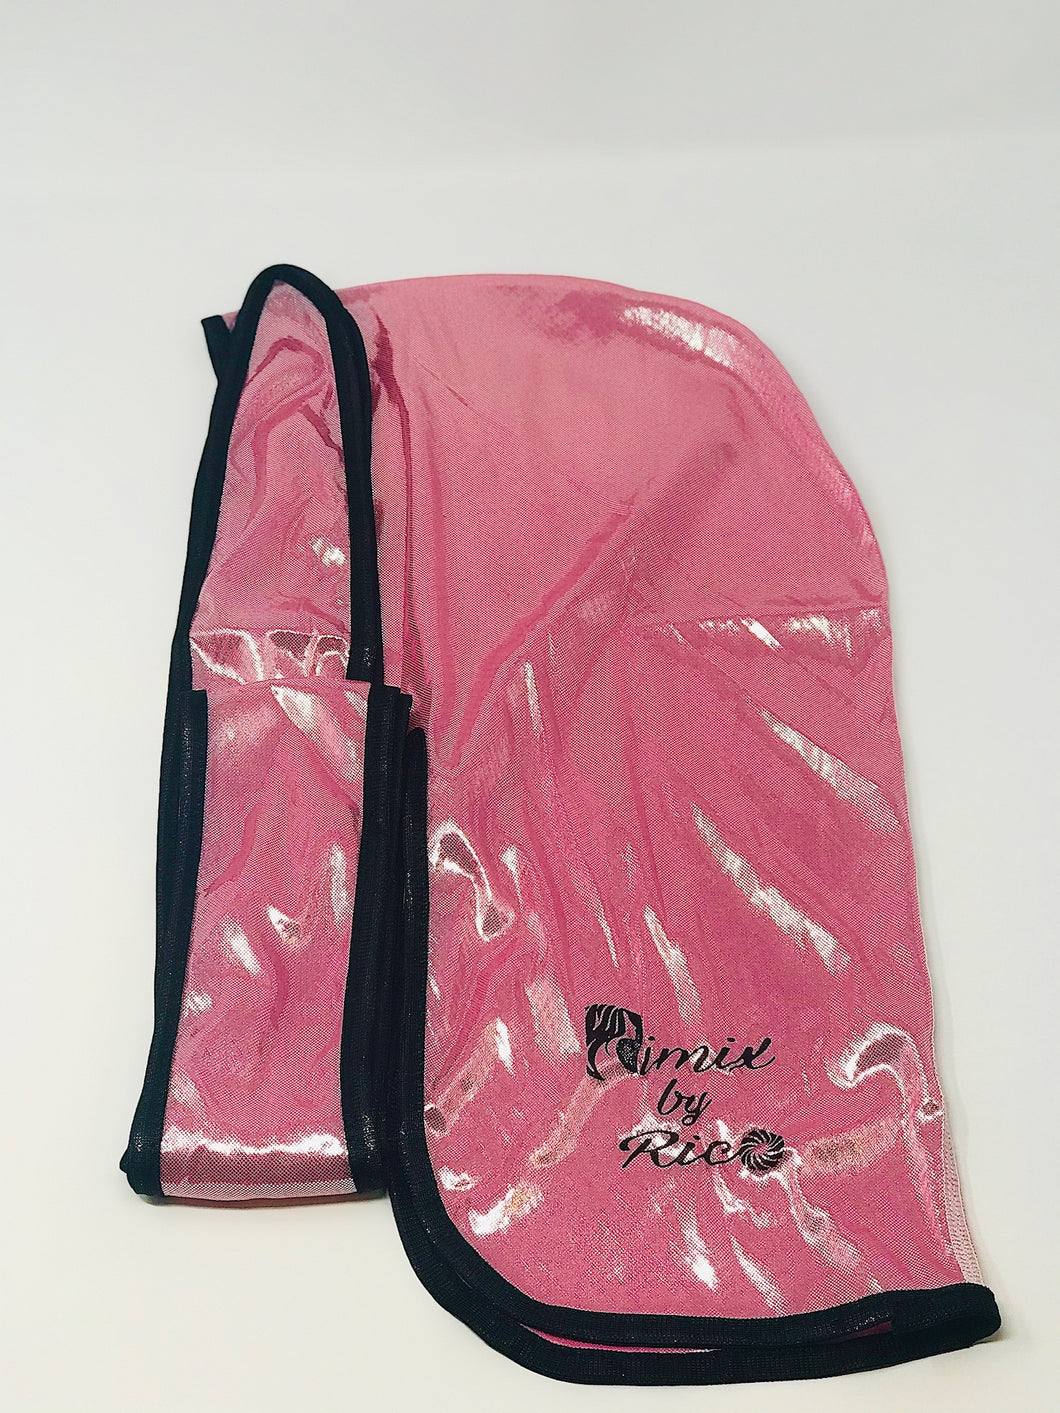 Rimix 8K Ultra Tuxedo Durag**Limited Edition - Pink/Black Trim